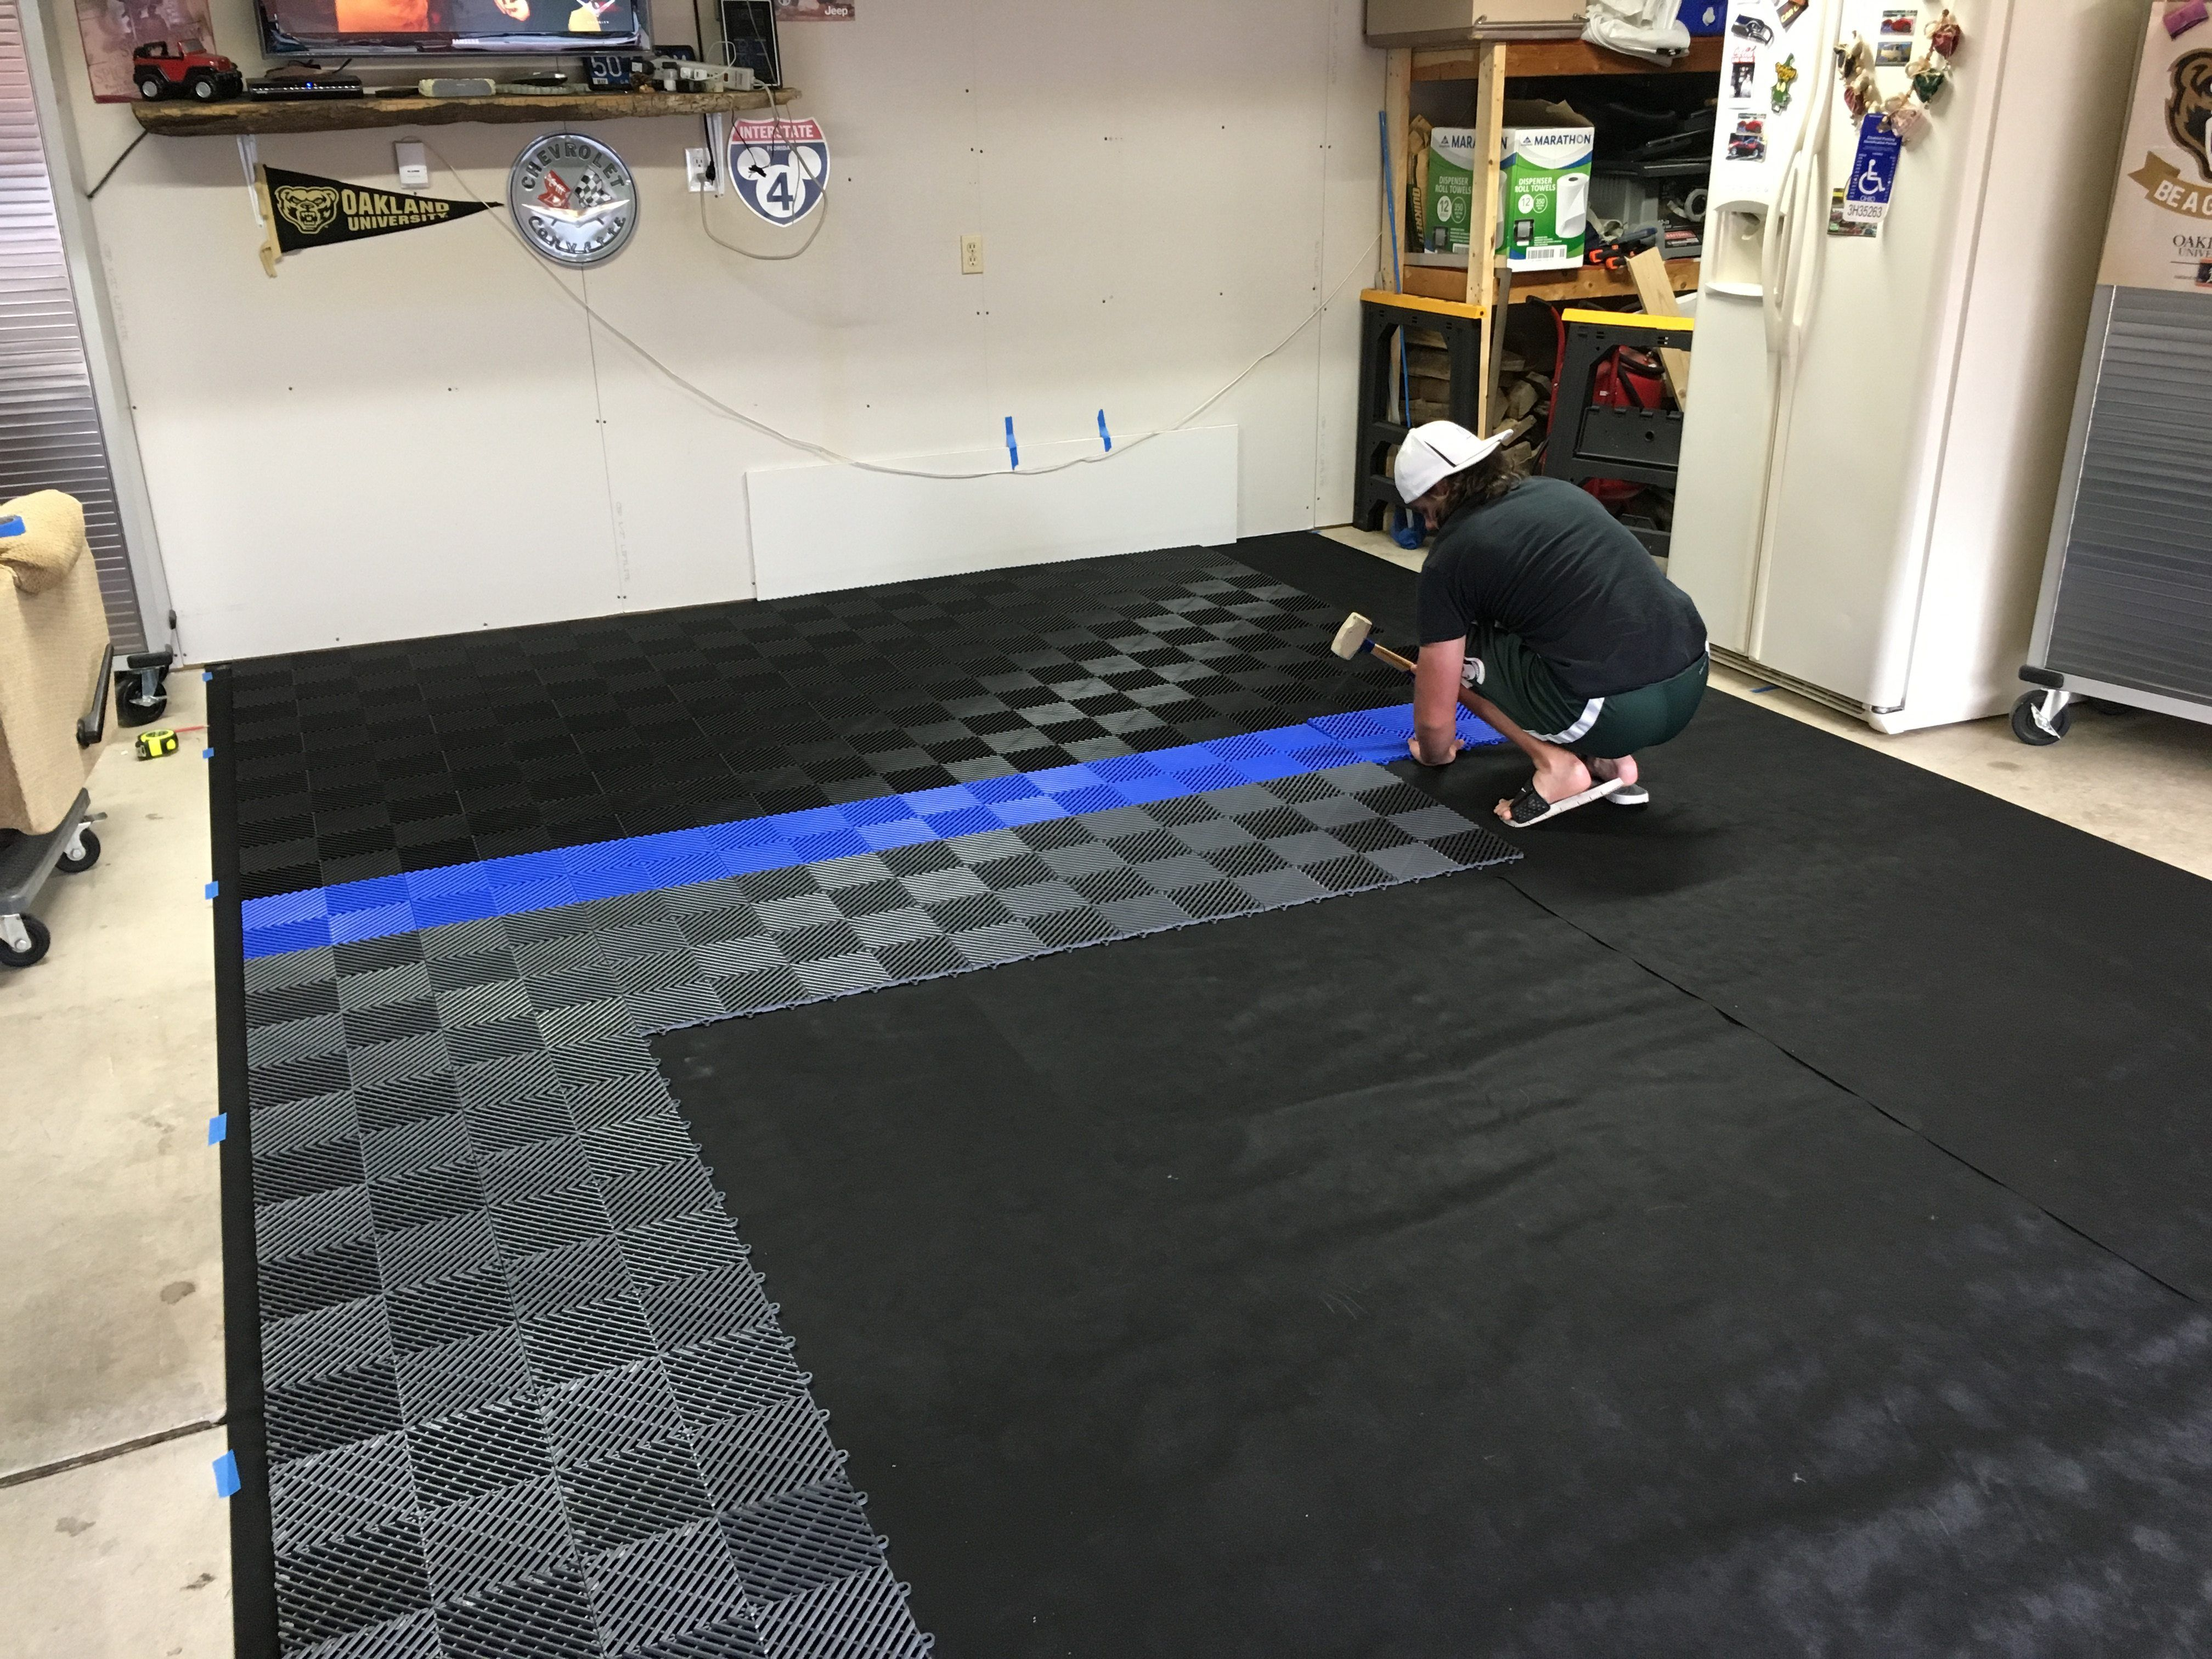 Swisstrax garage flooring ribtrax tile pearl silver racing red before and after racedeck free flow brians garage tile garageflooring dailygadgetfo Images